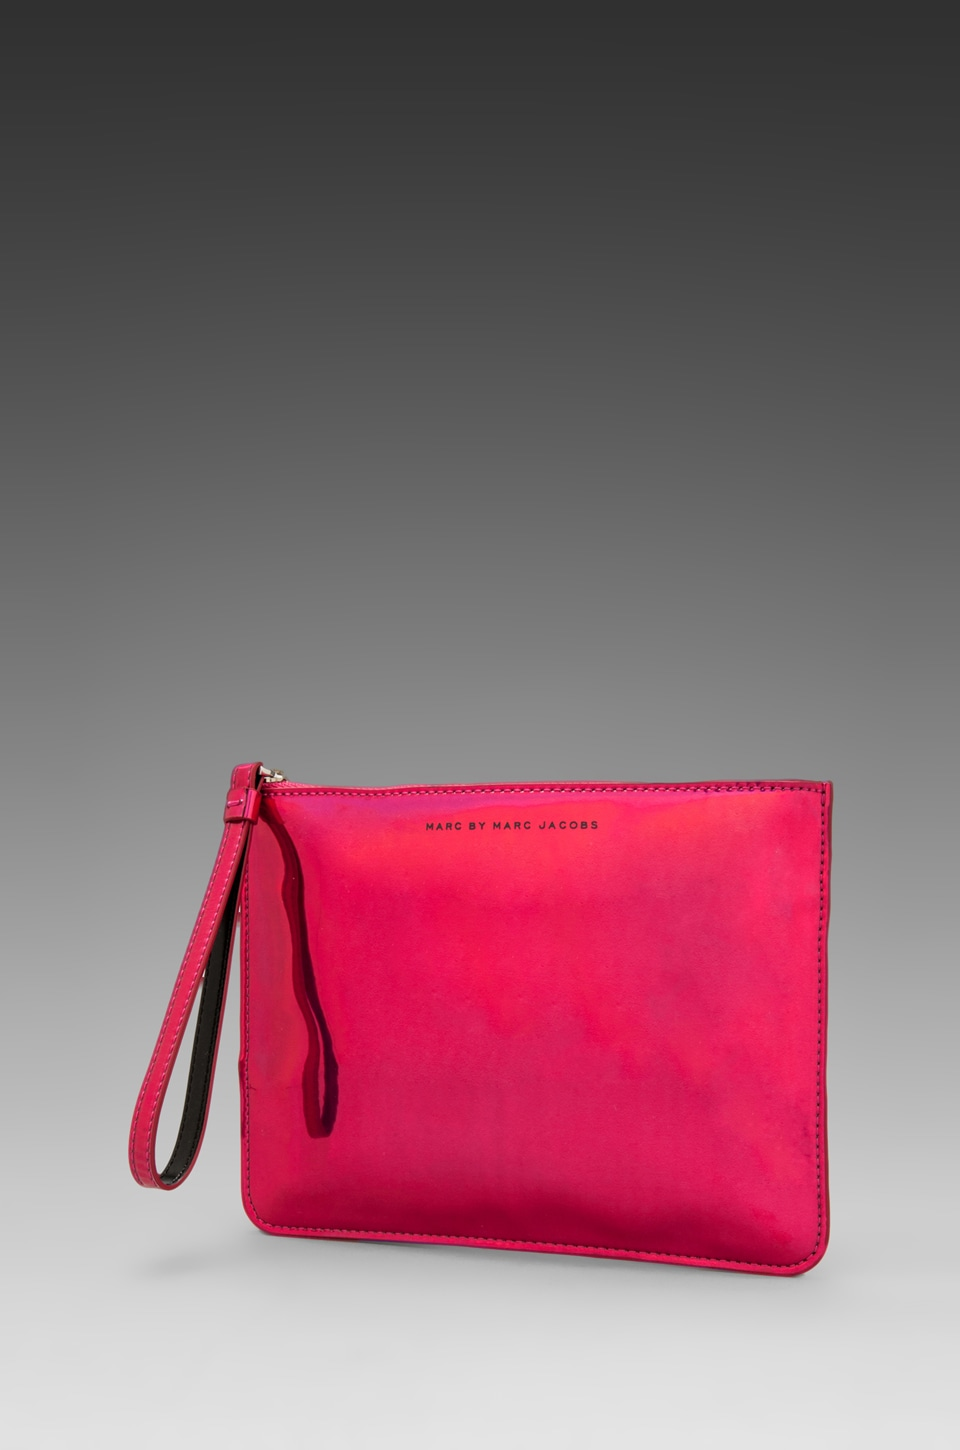 Marc by Marc Jacobs Techno Wristlet Zip Pouch in Rose Holographic